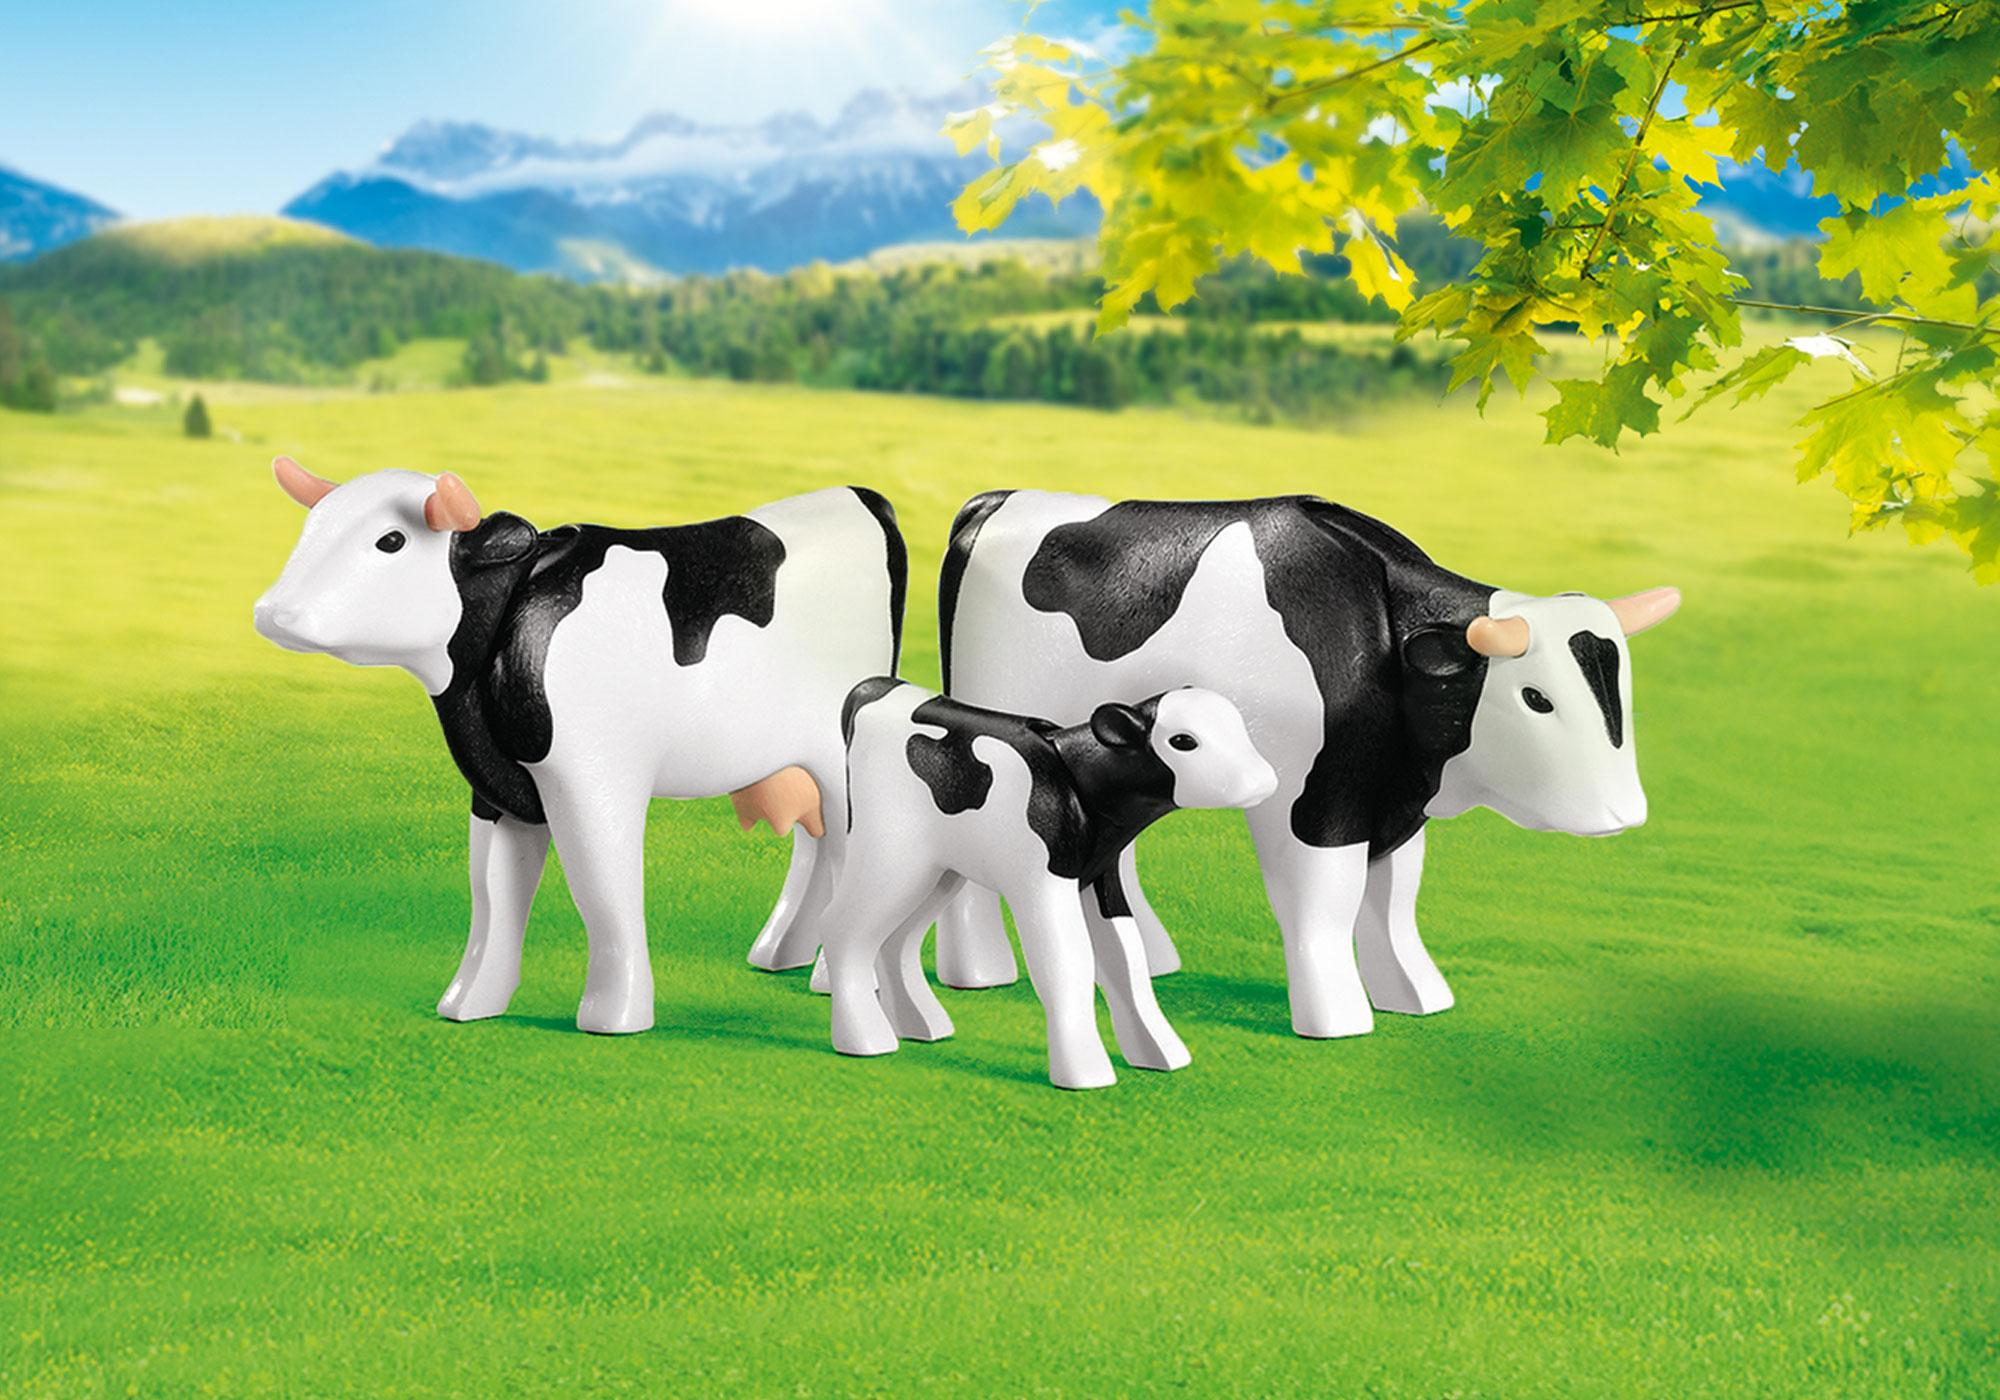 Playmobil Additions /& Accessories New 7892 Cattle with Little Calf